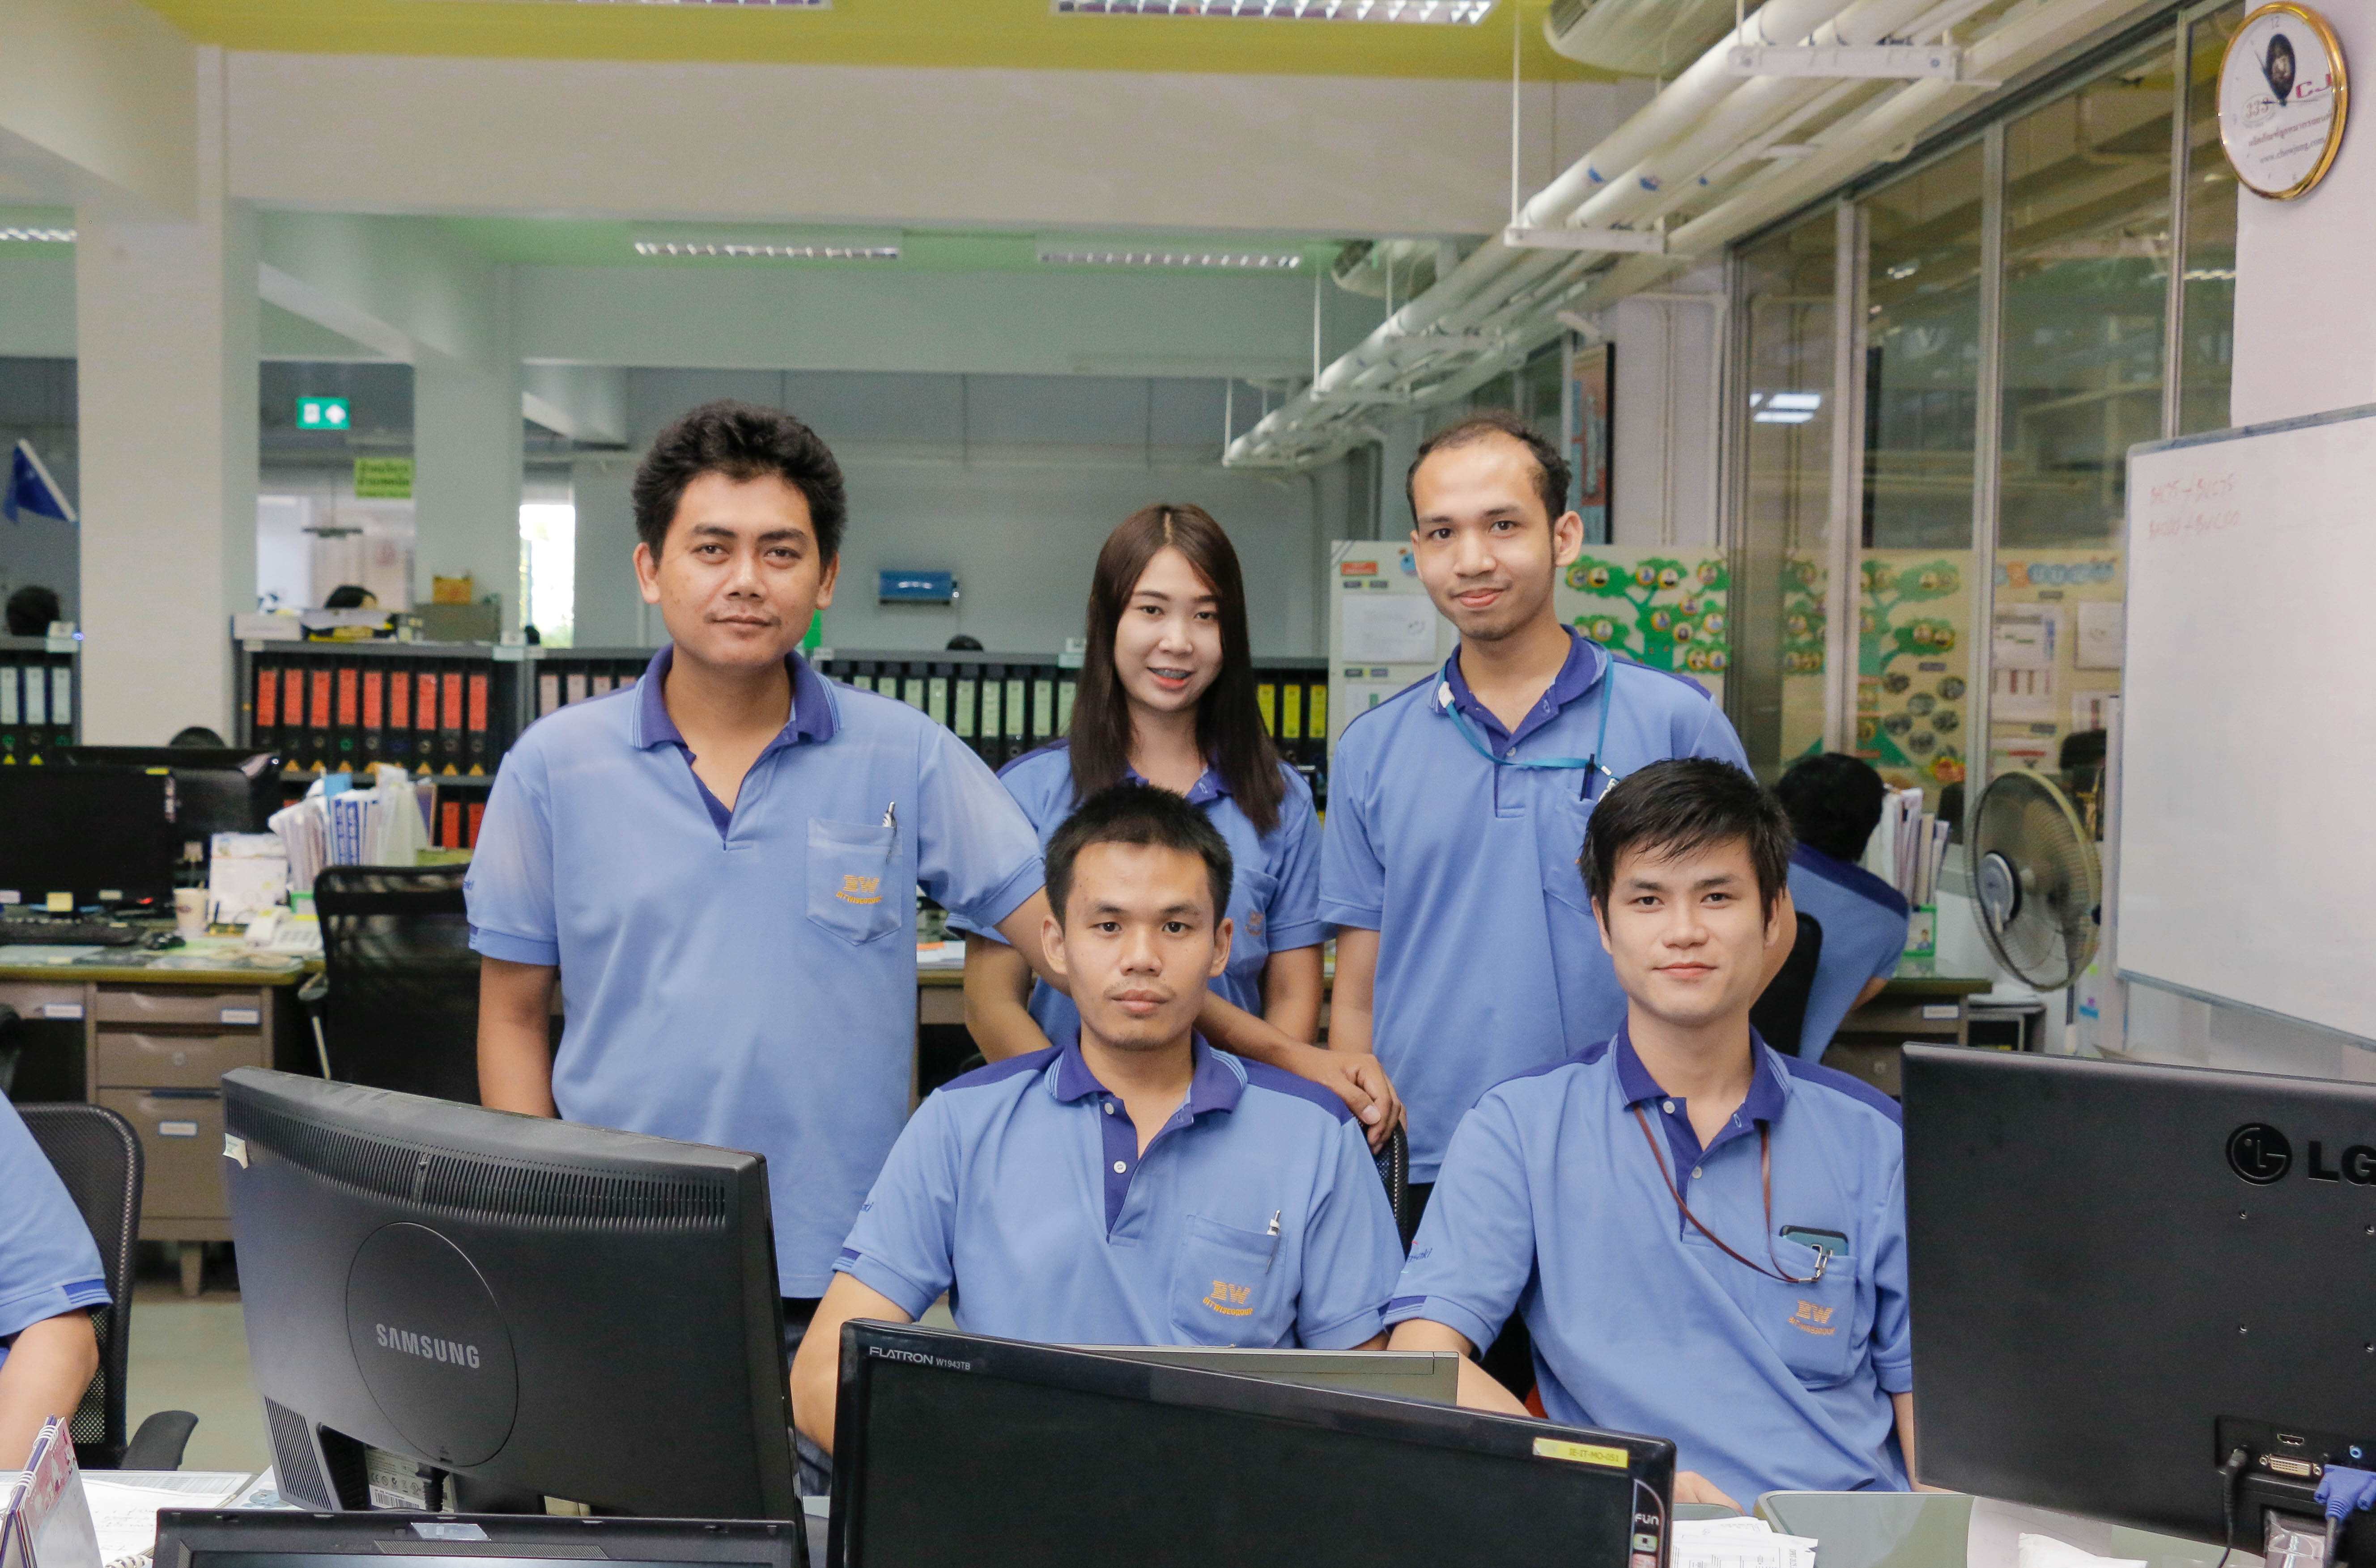 Working at Bitwise